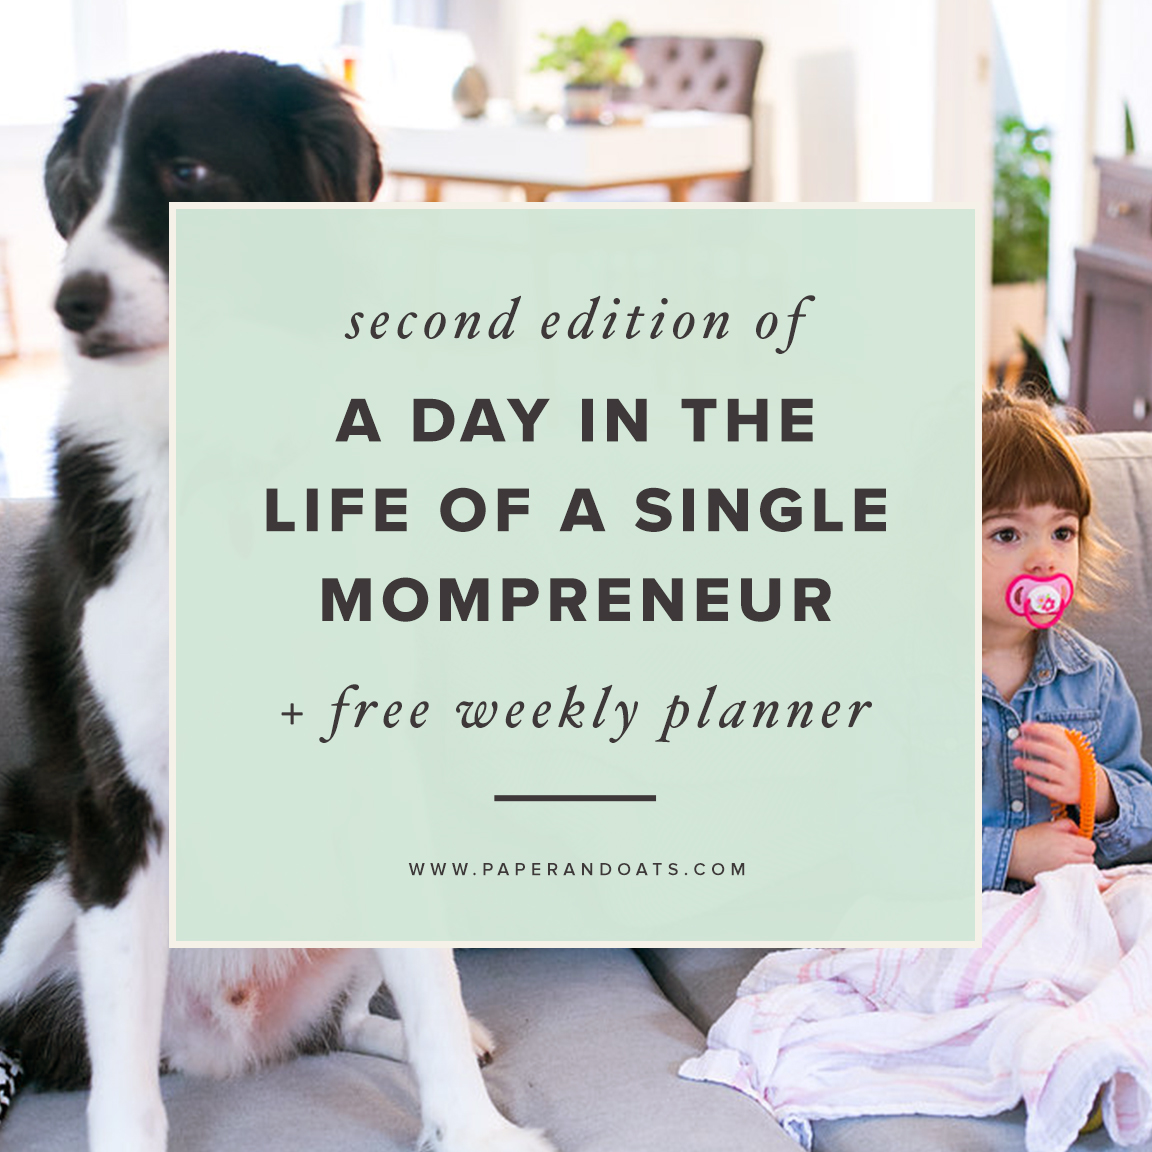 Second Edition: A Day in the Life of a Single Mompreneur (+ free